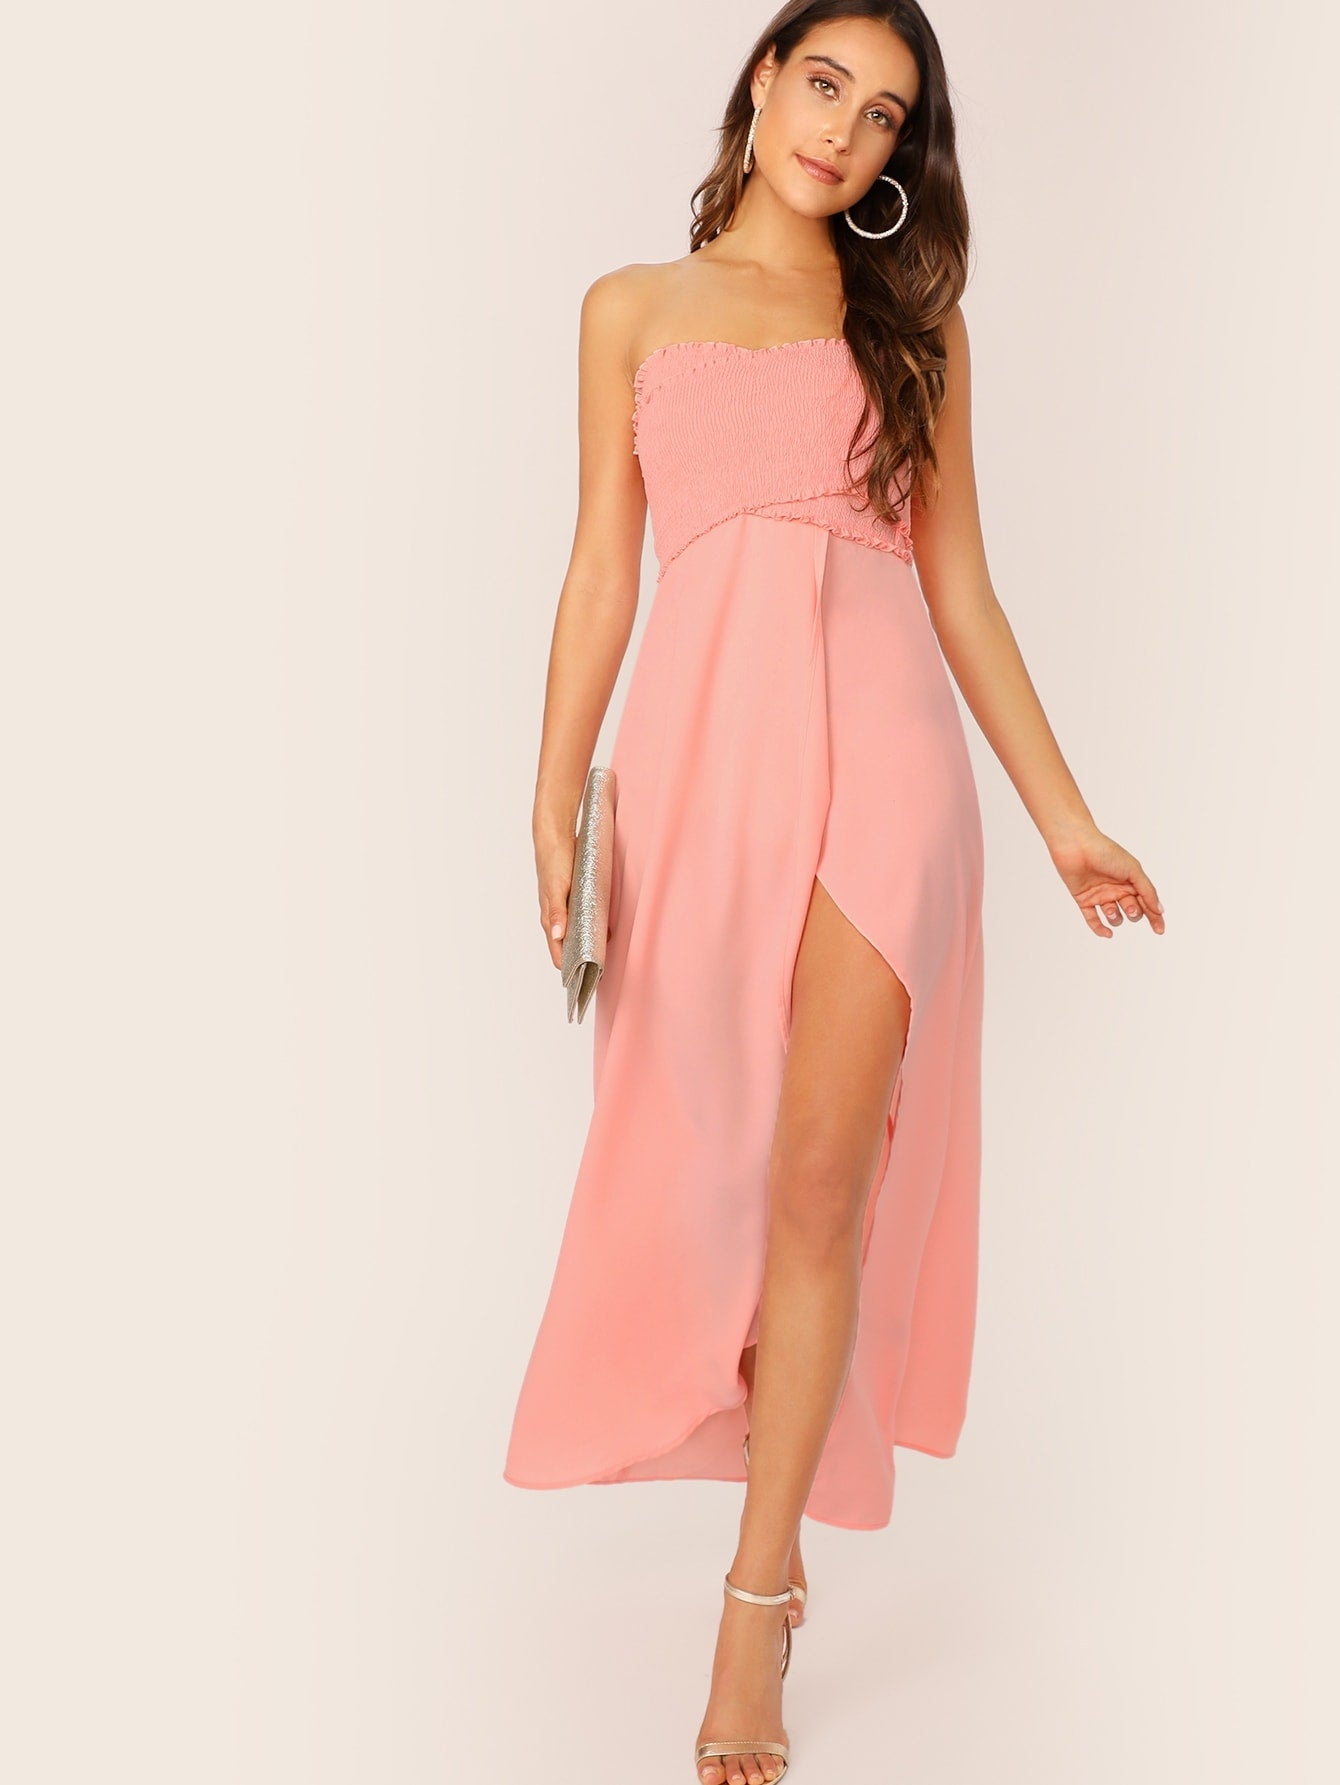 Frill Trim Shirred Slit Summer Dress - BrandsGuru